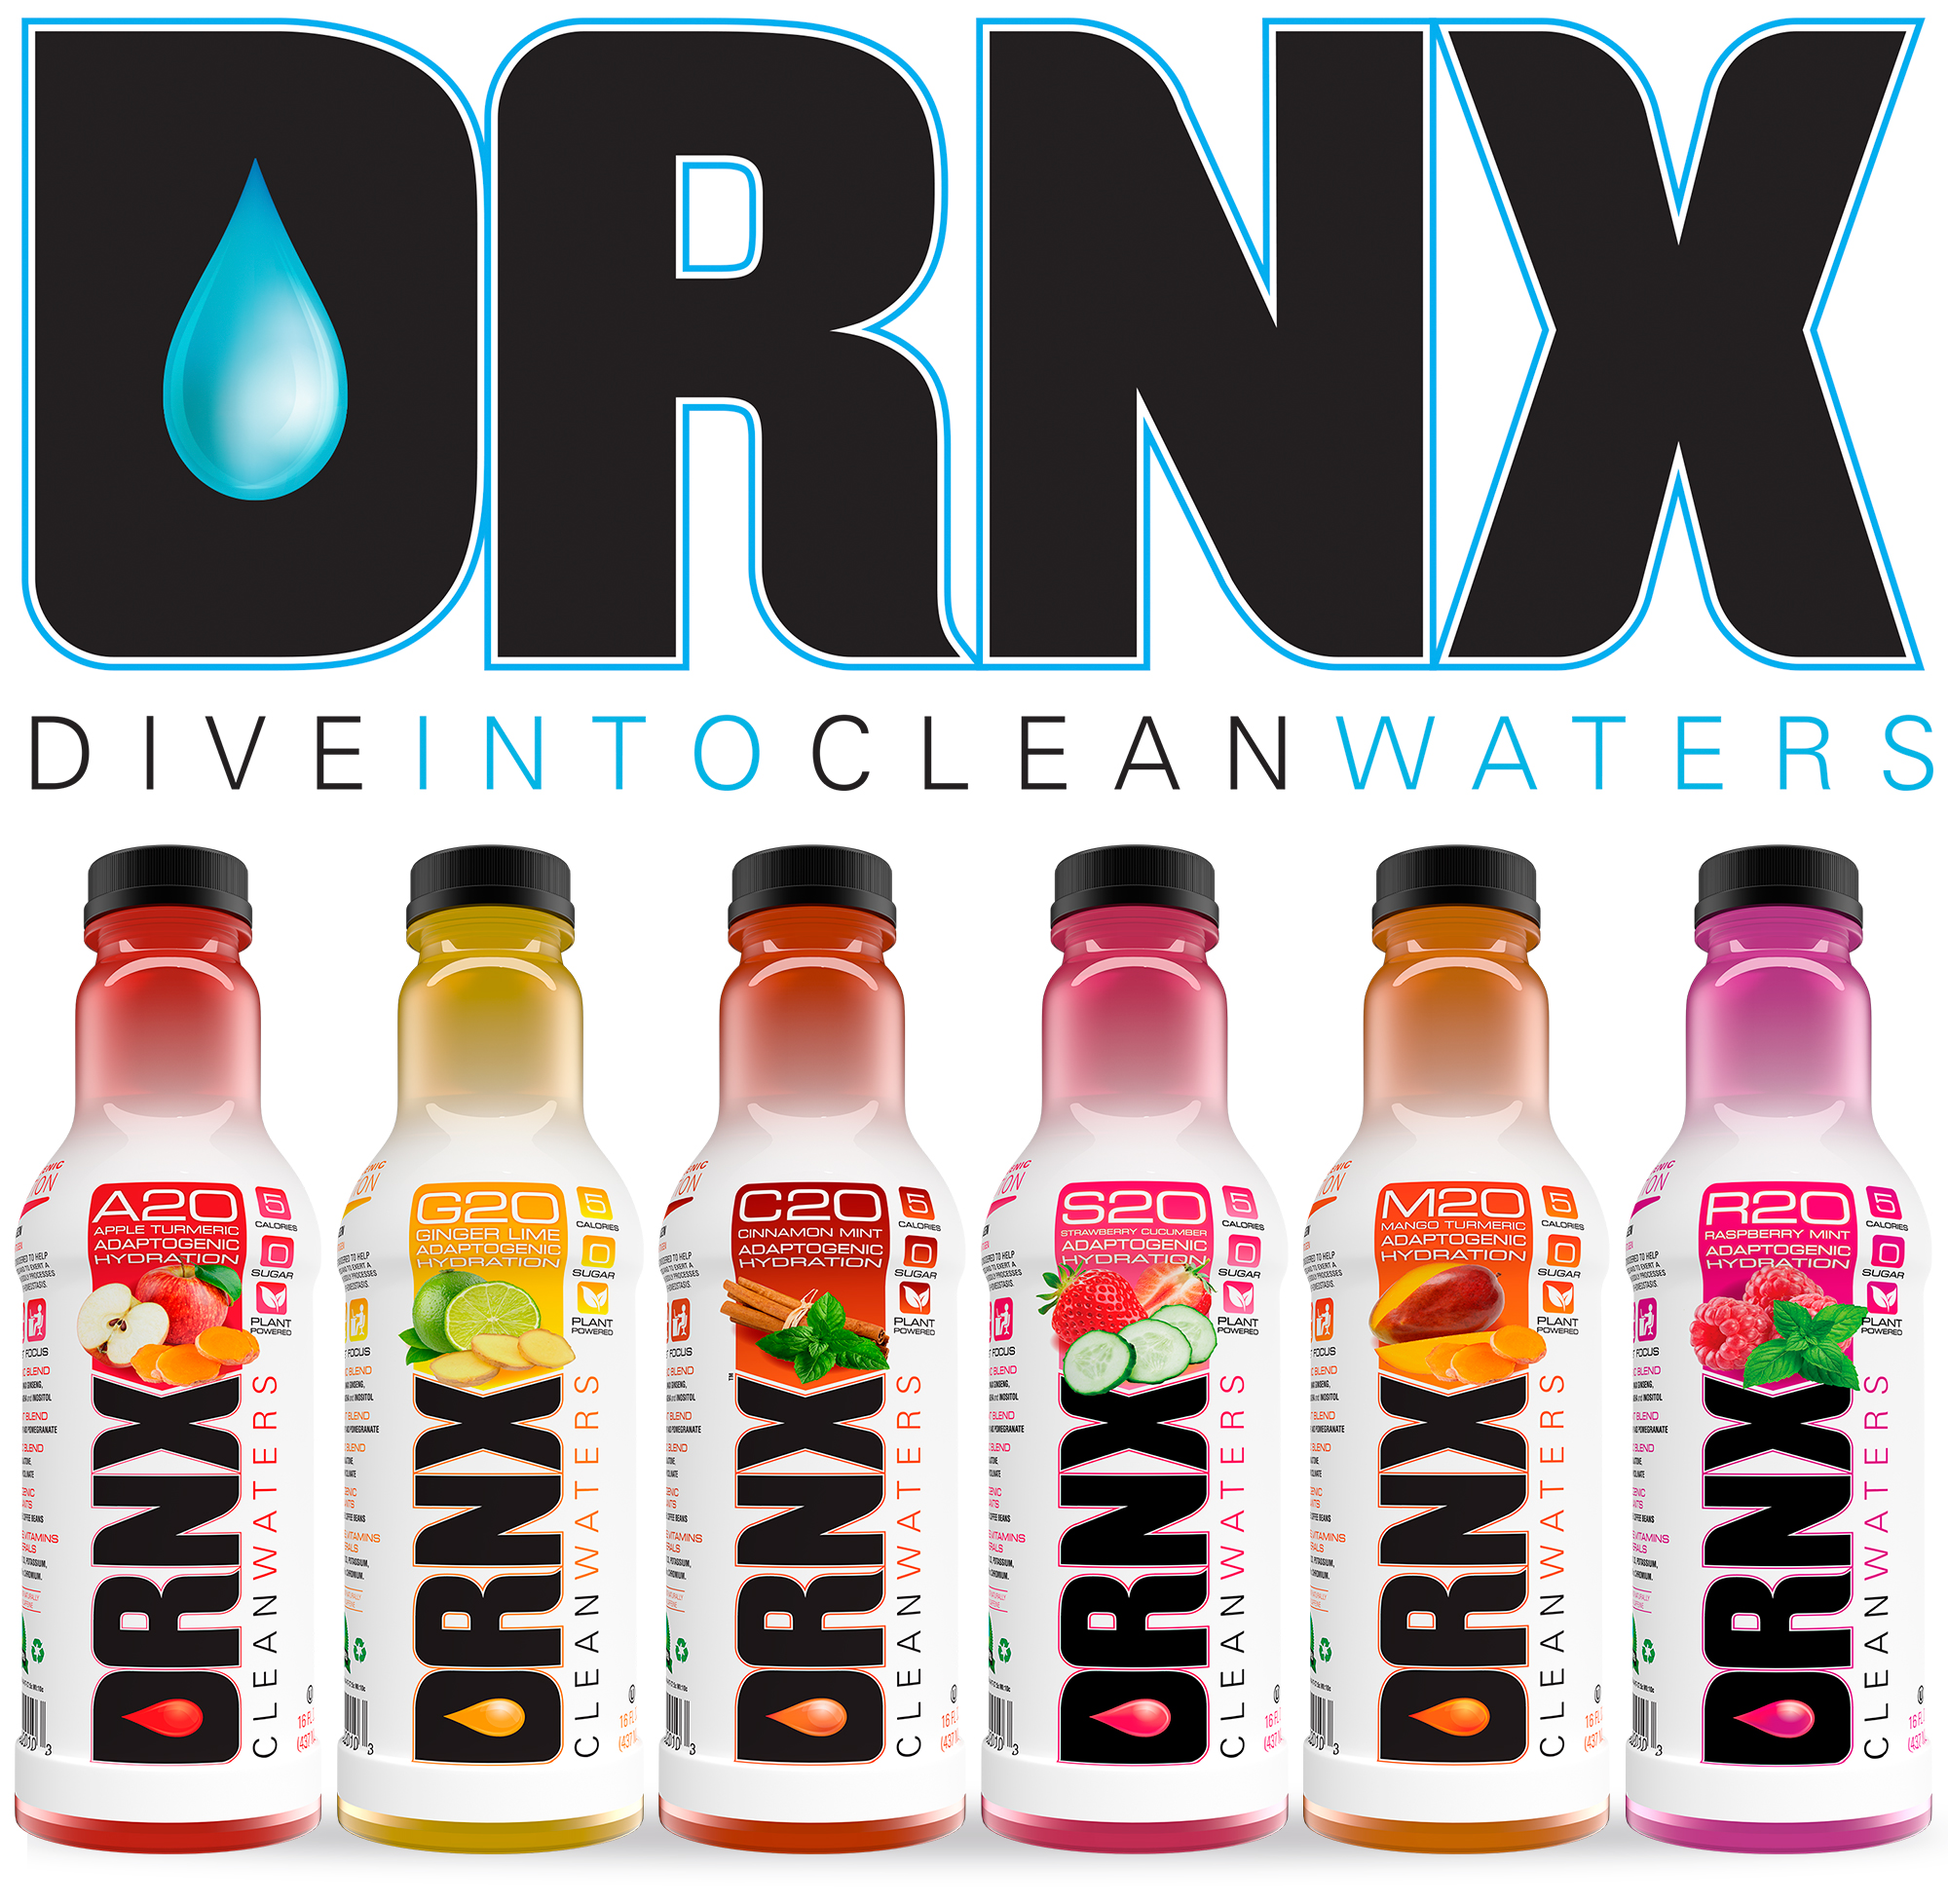 DRNX Adoptogenic Spice and Infused Waters